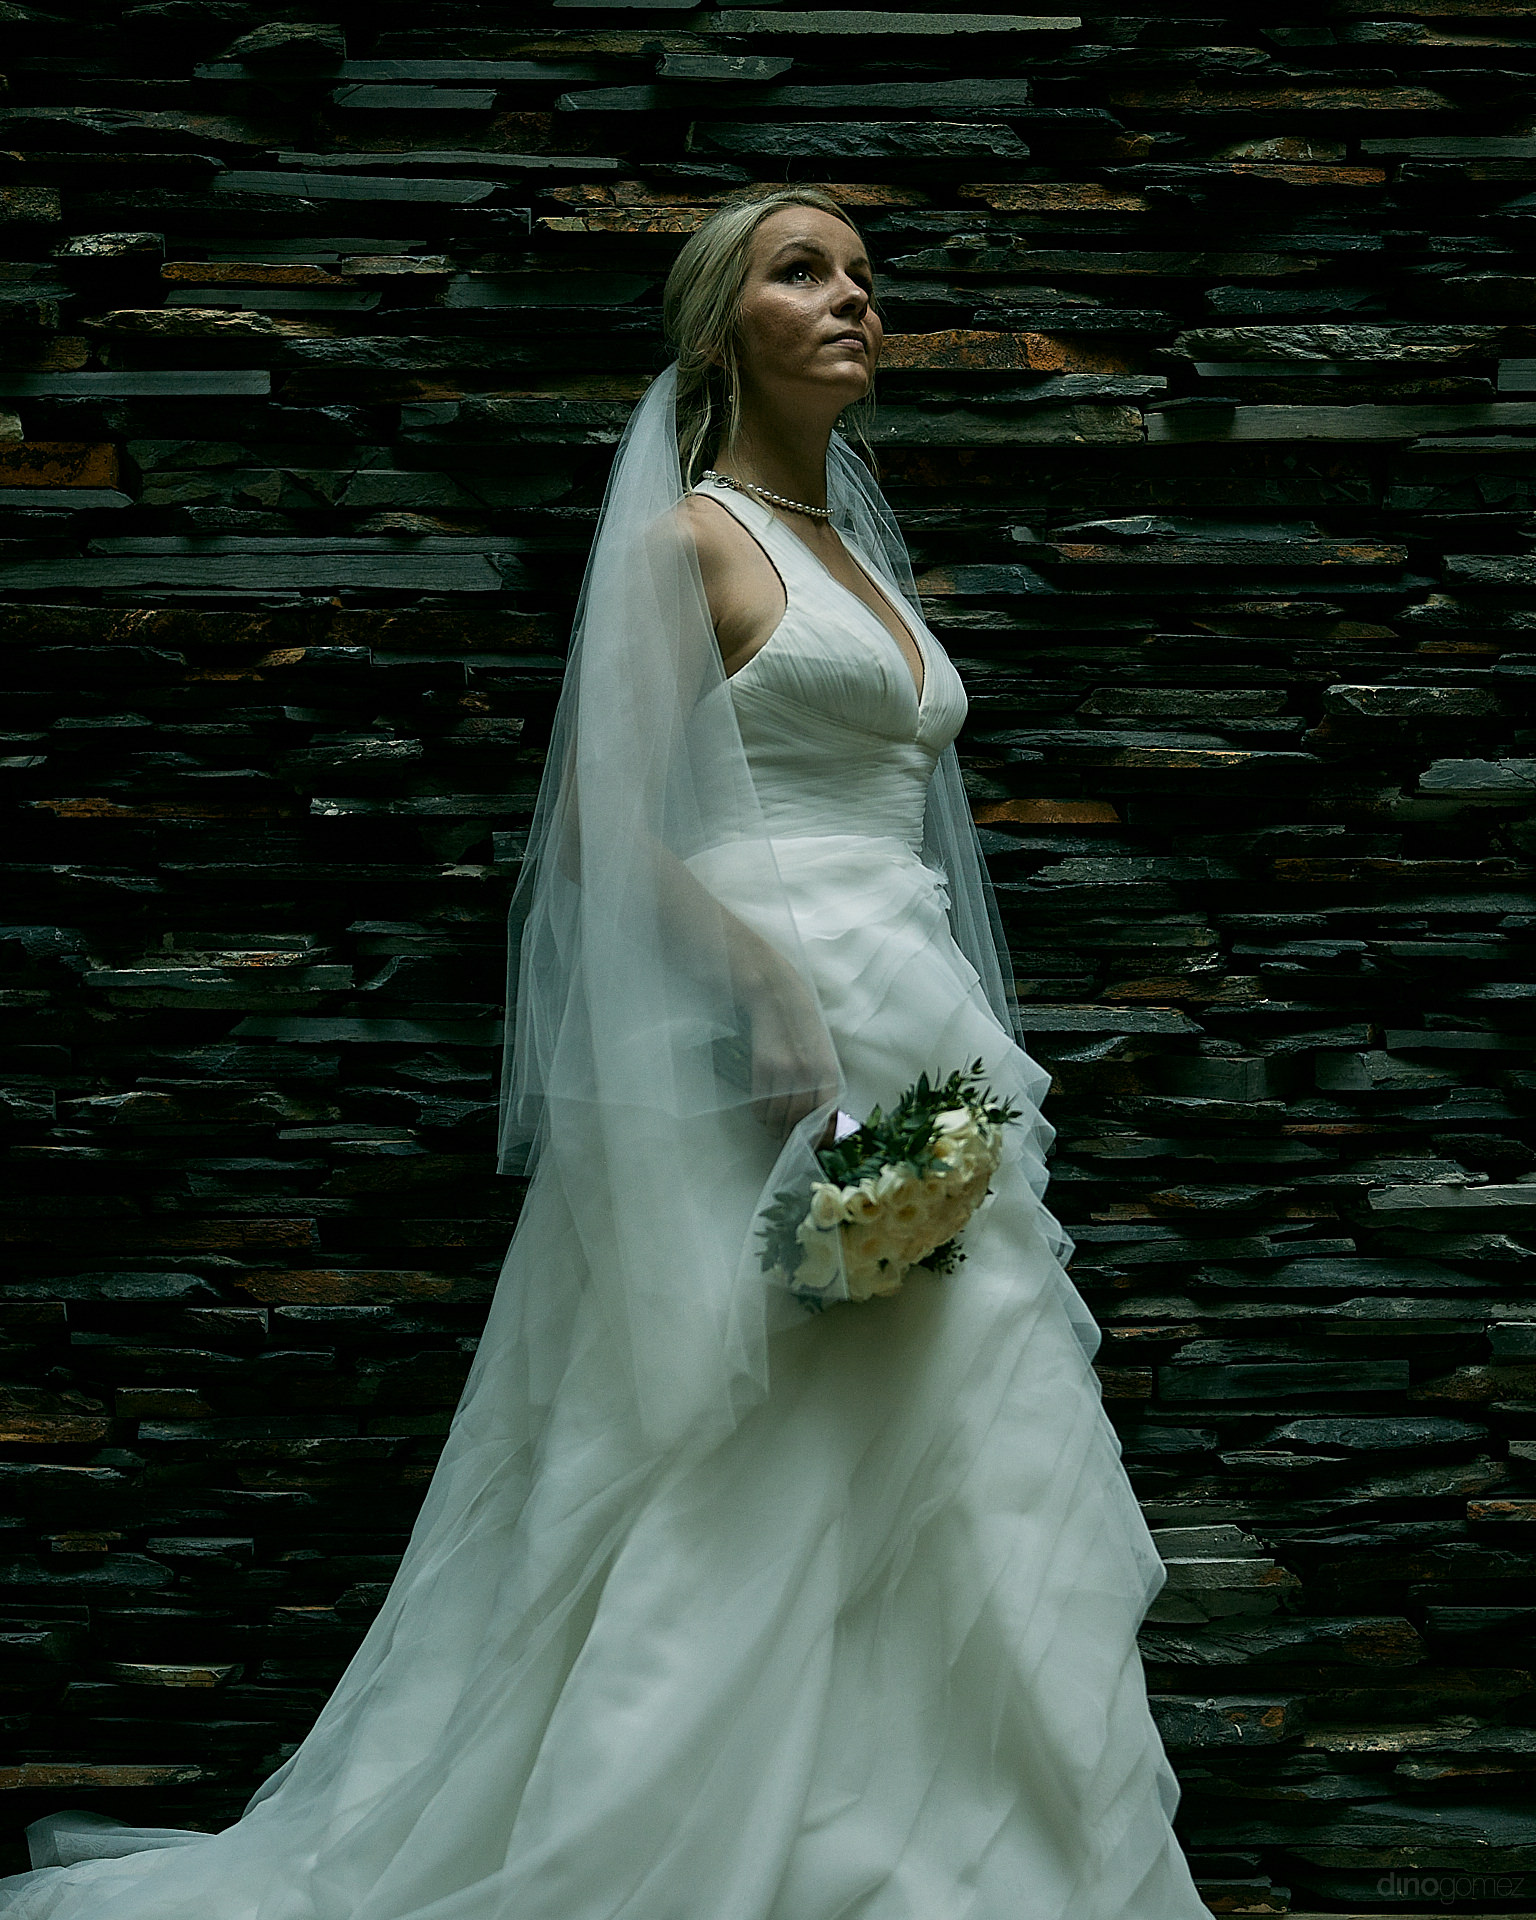 We Offer The Most Exclusive Destination Wedding Photography